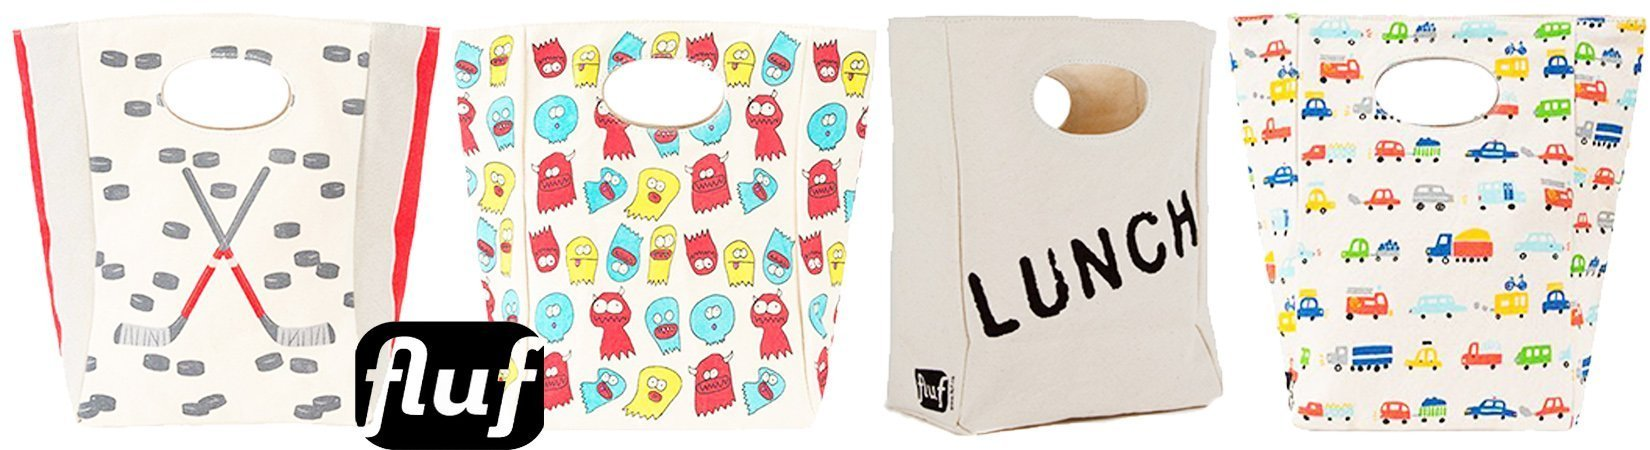 FLUF 100%Organic Cotton Lunch Bags